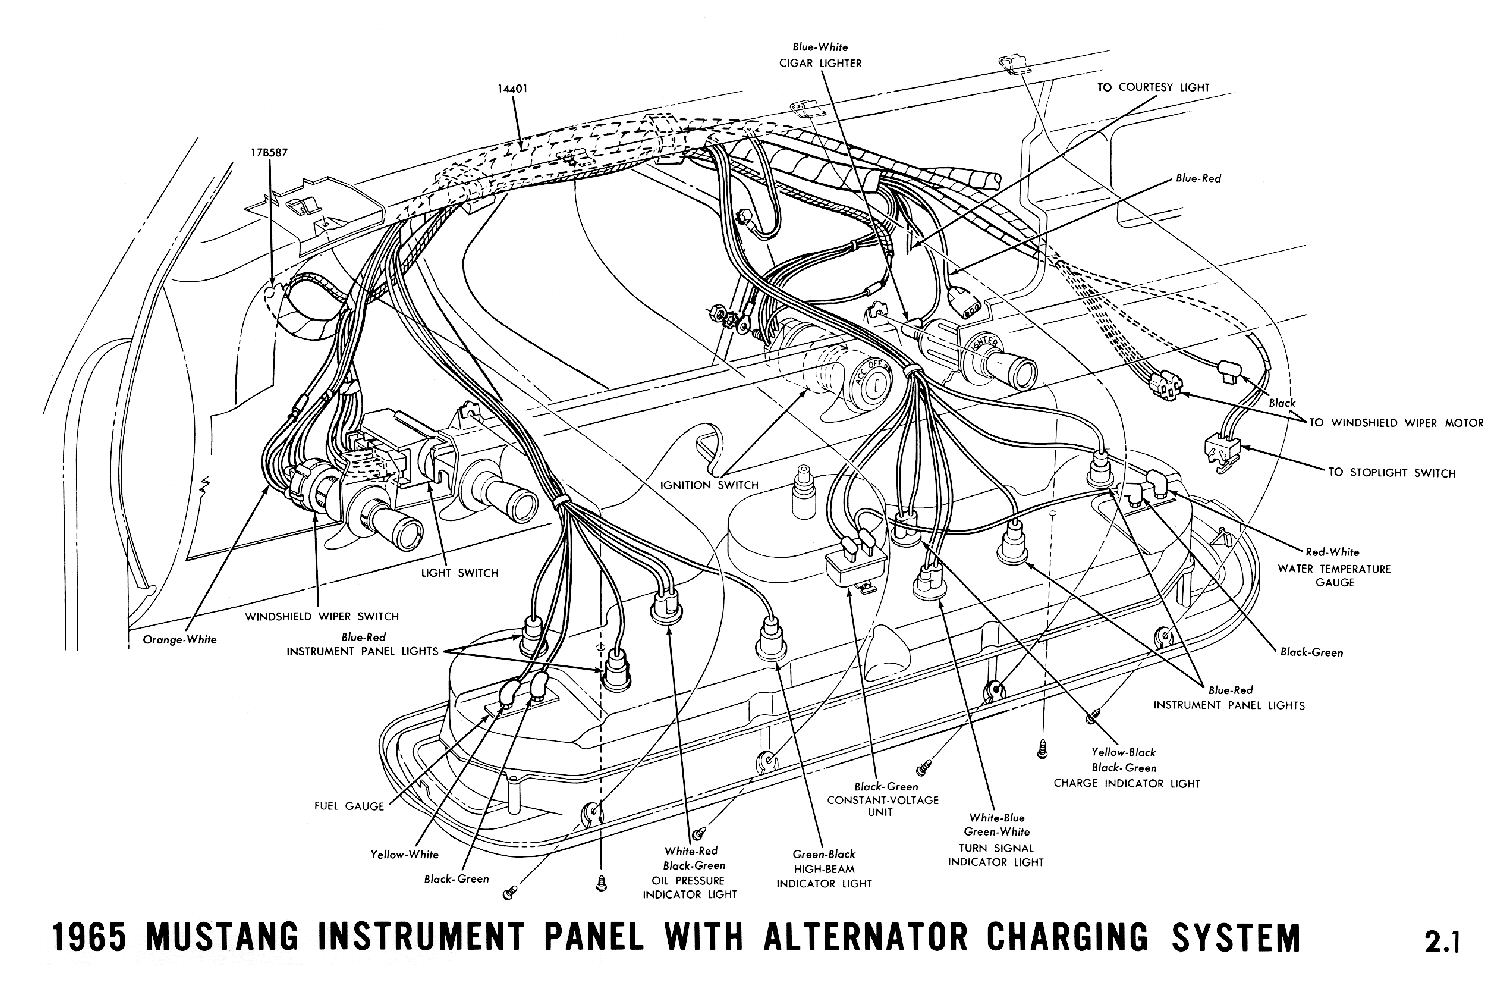 1965 mustang wiring diagrams average joe restoration rh averagejoerestoration com 66 Mustang Dash Wiring Diagram Radio Wiring Diagram